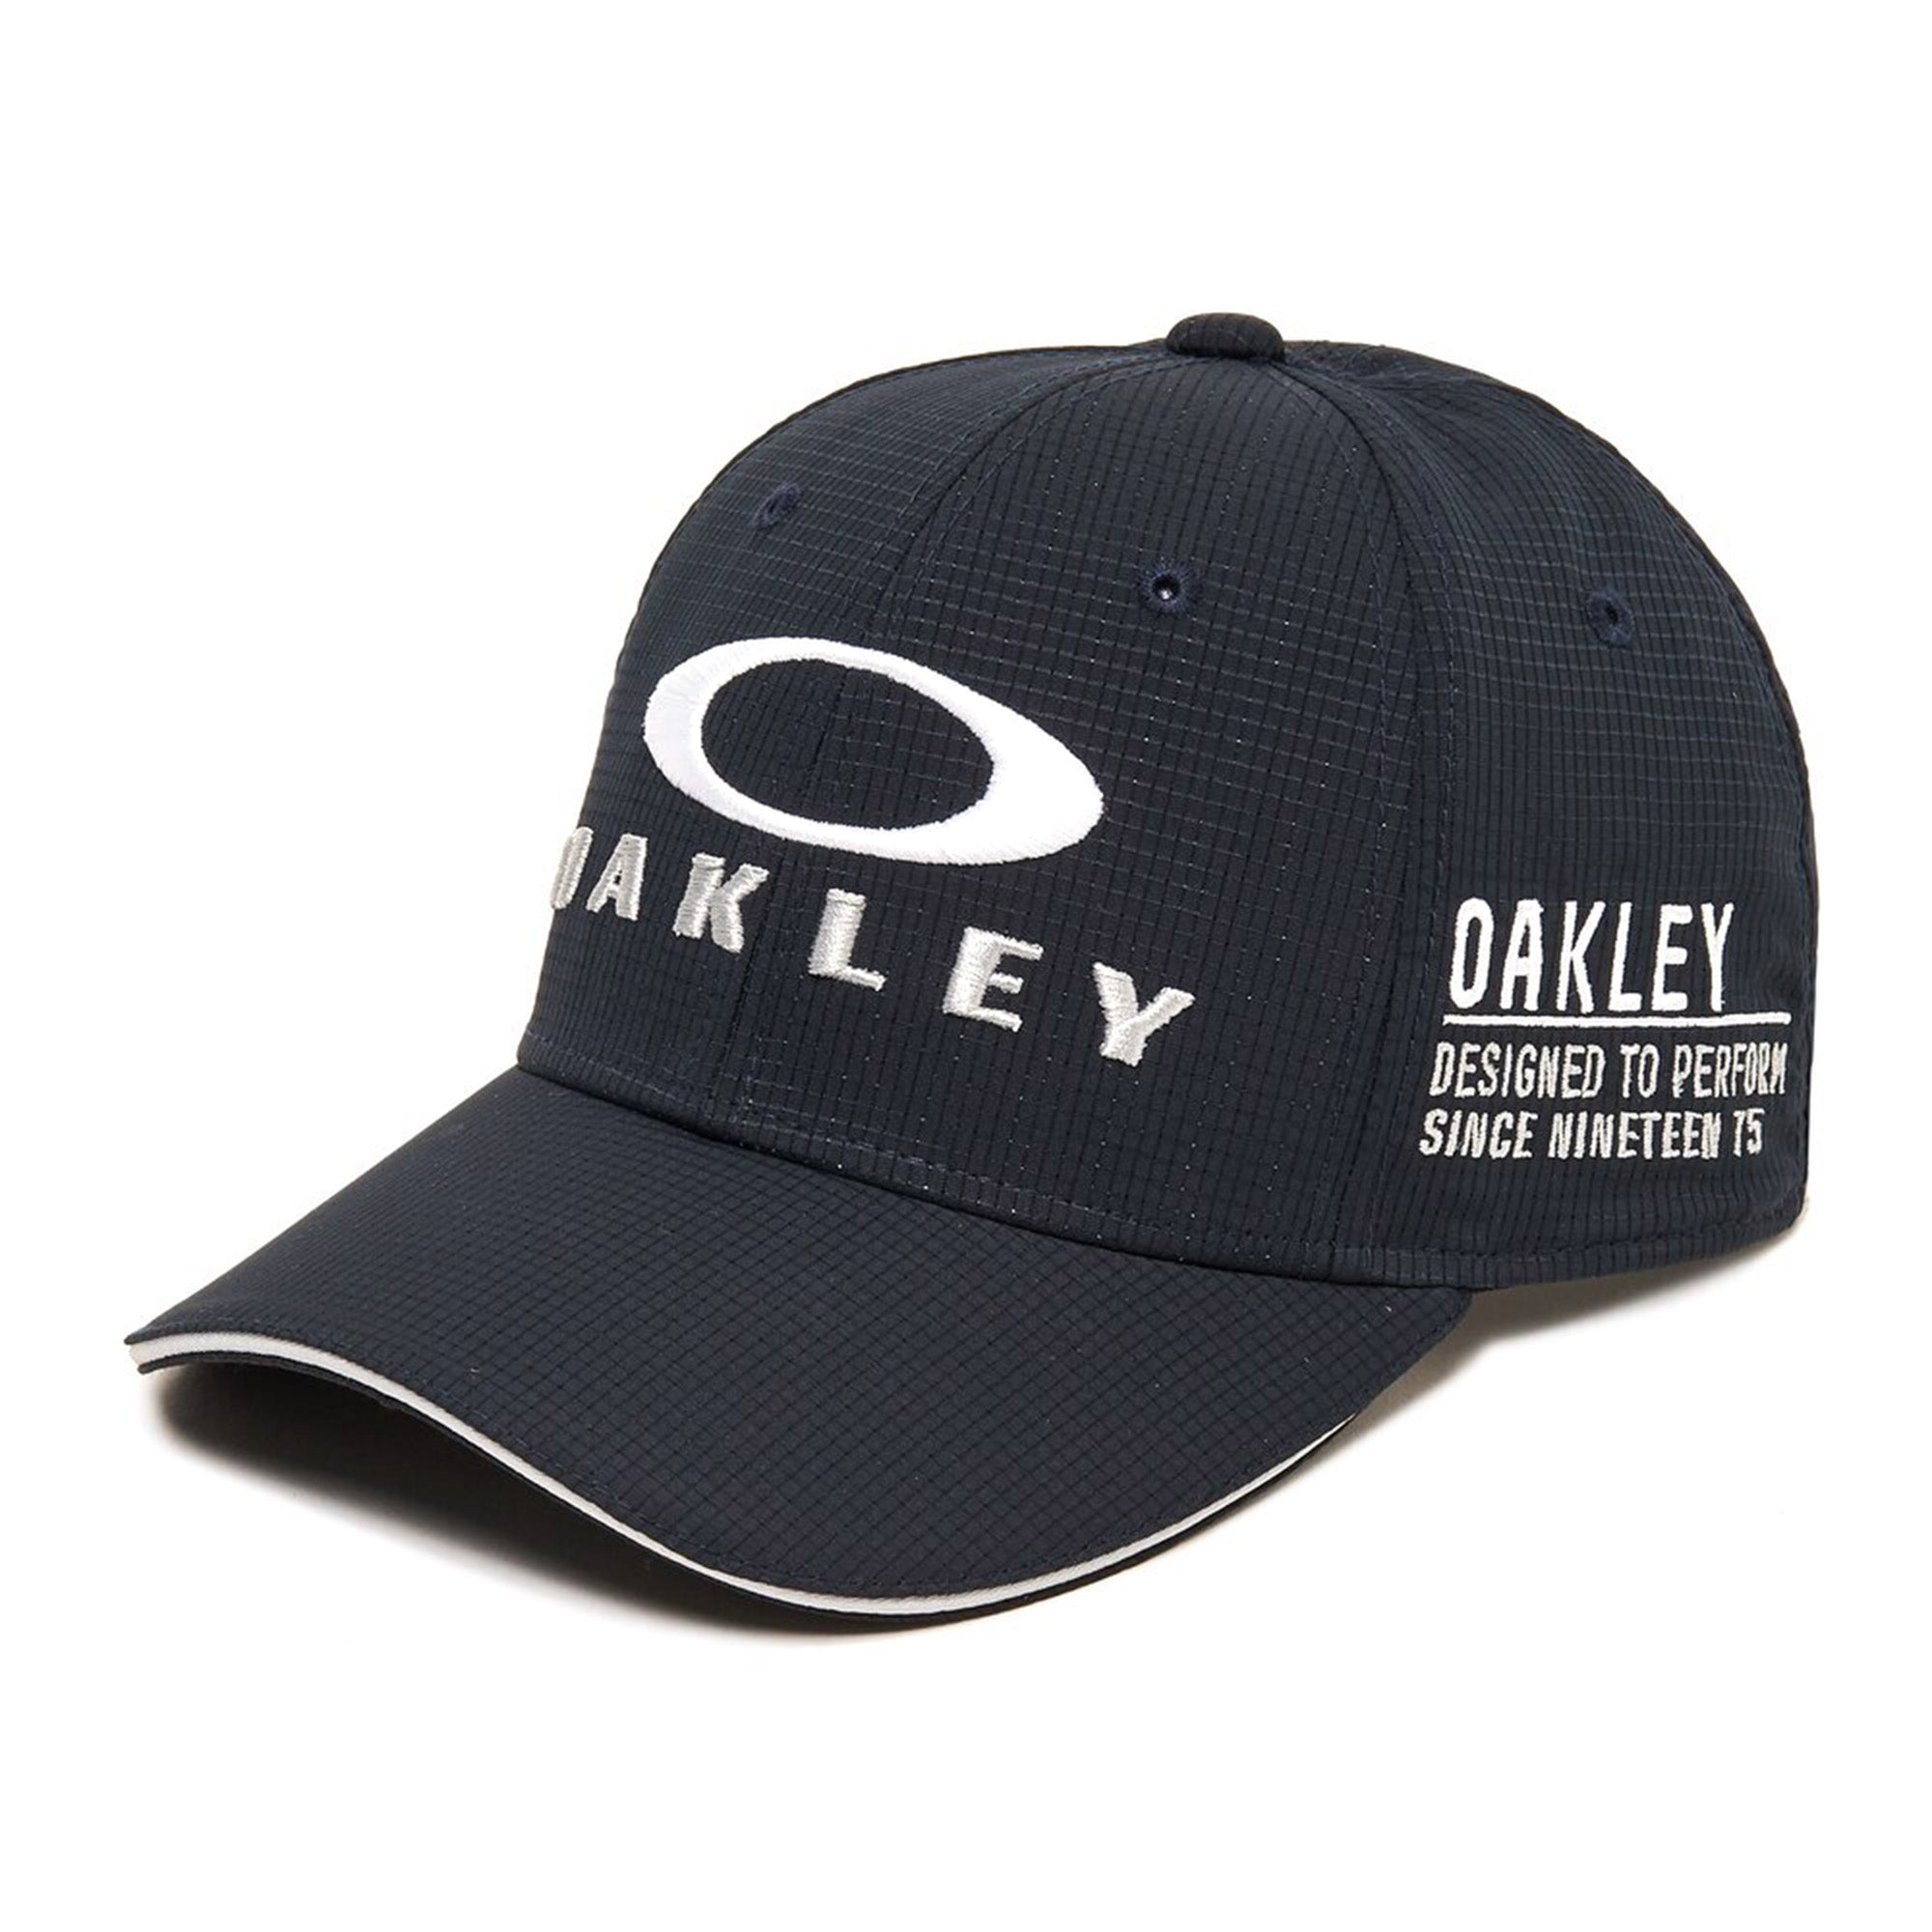 Oakley Golf Adjustable Cap